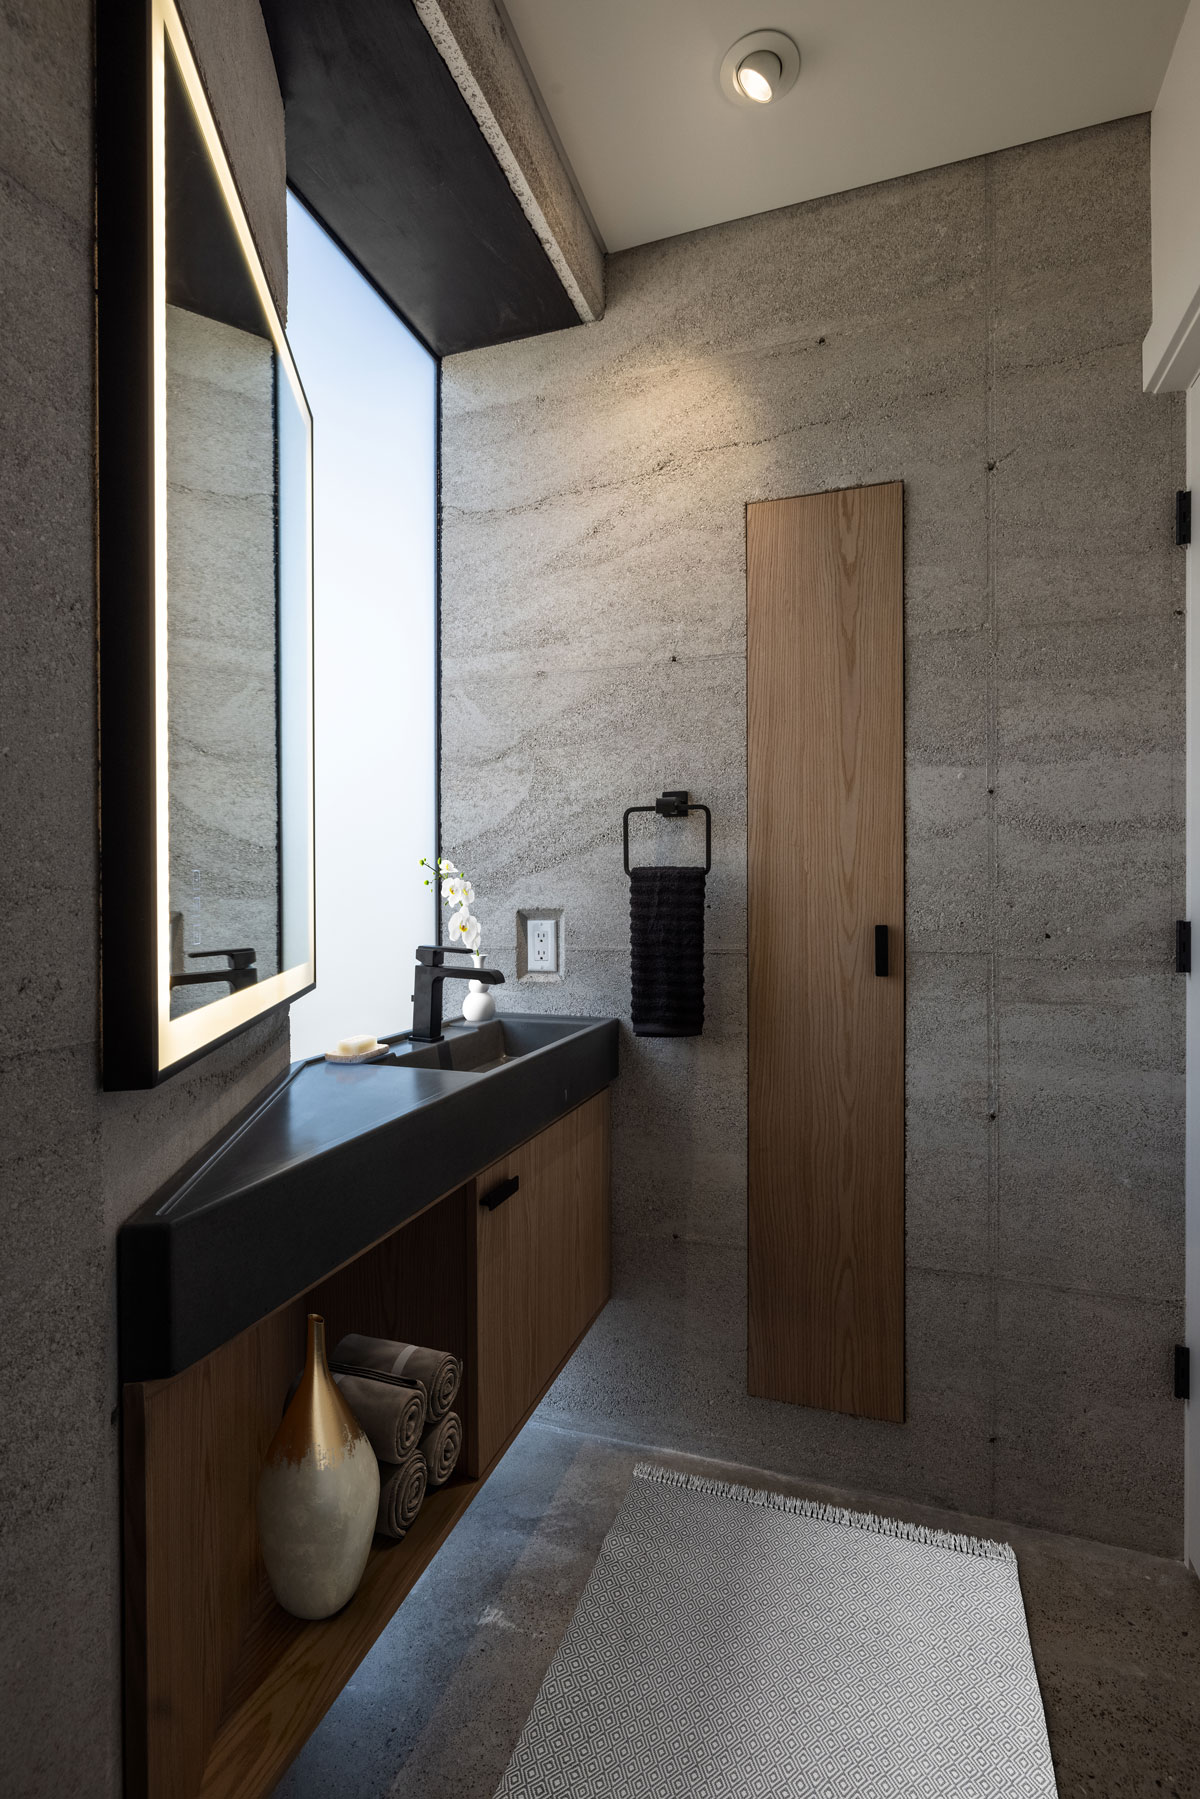 The powder bath in the modern CALX Cabin rammed earth house showcases this bespoke concrete sink and floating cabinet handcrafted in the USA by Hard Goods.